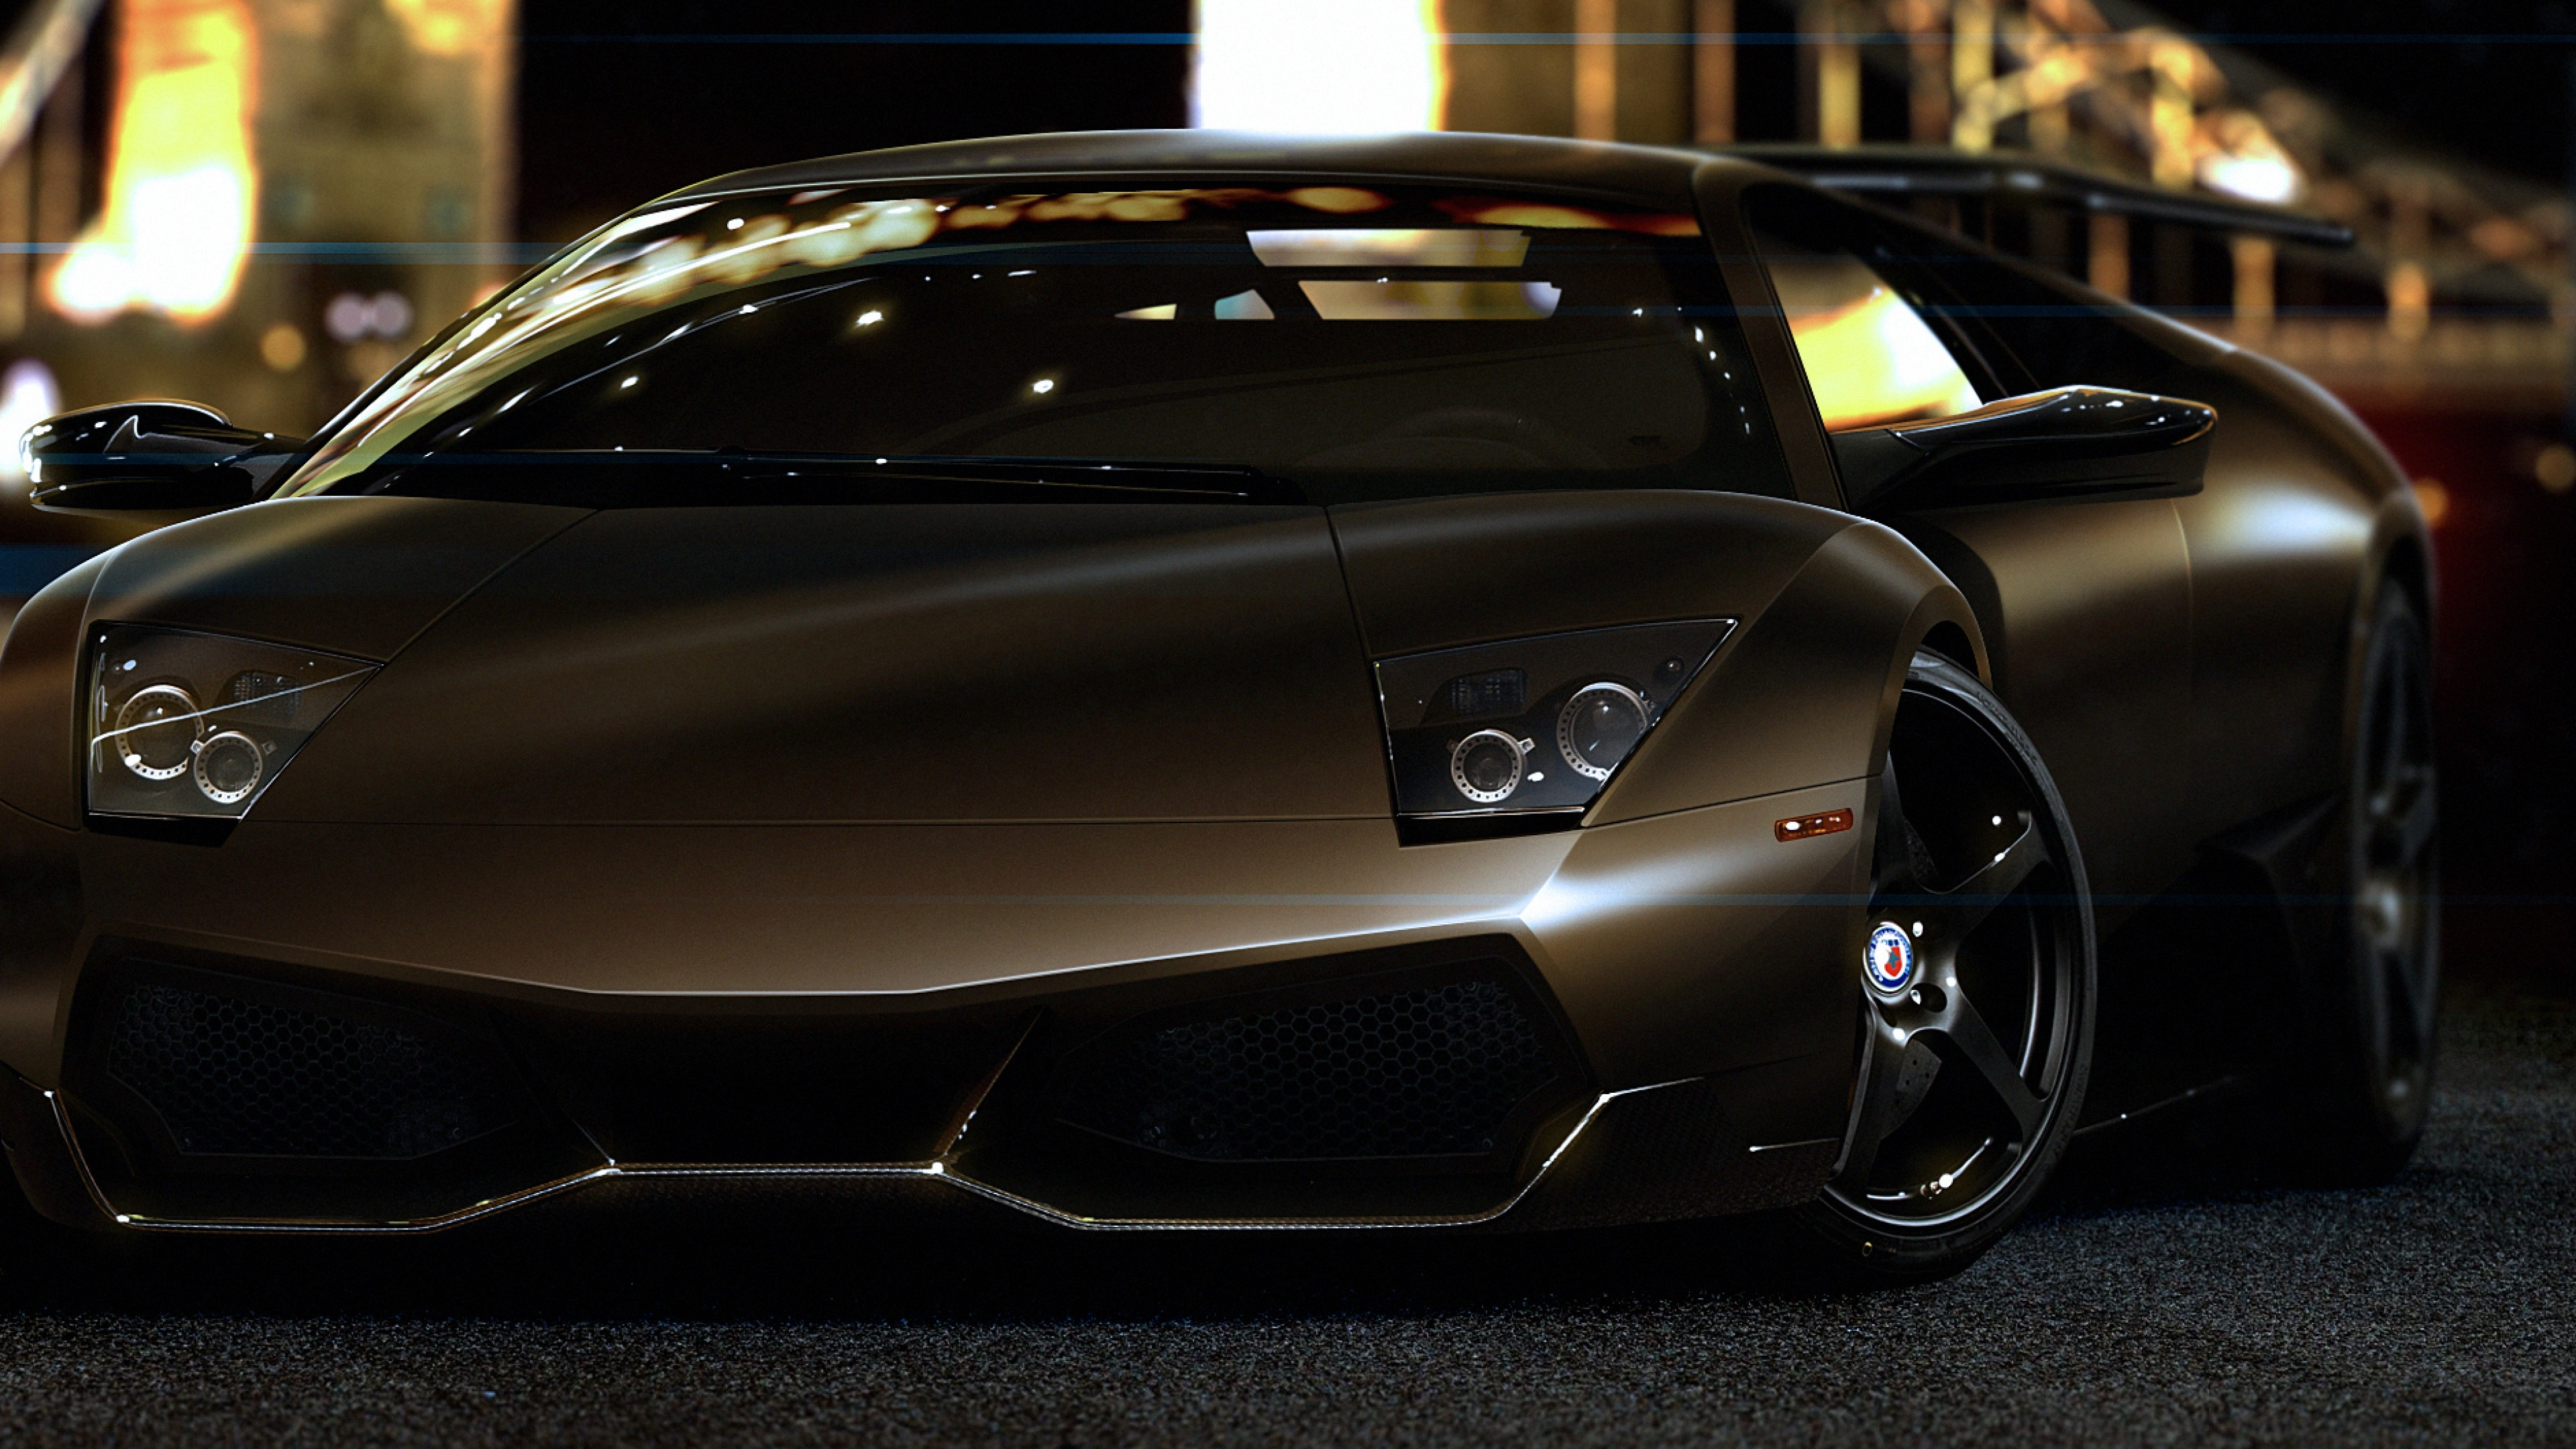 Wallpaper Lamborghini Murcielago Supercar Brown